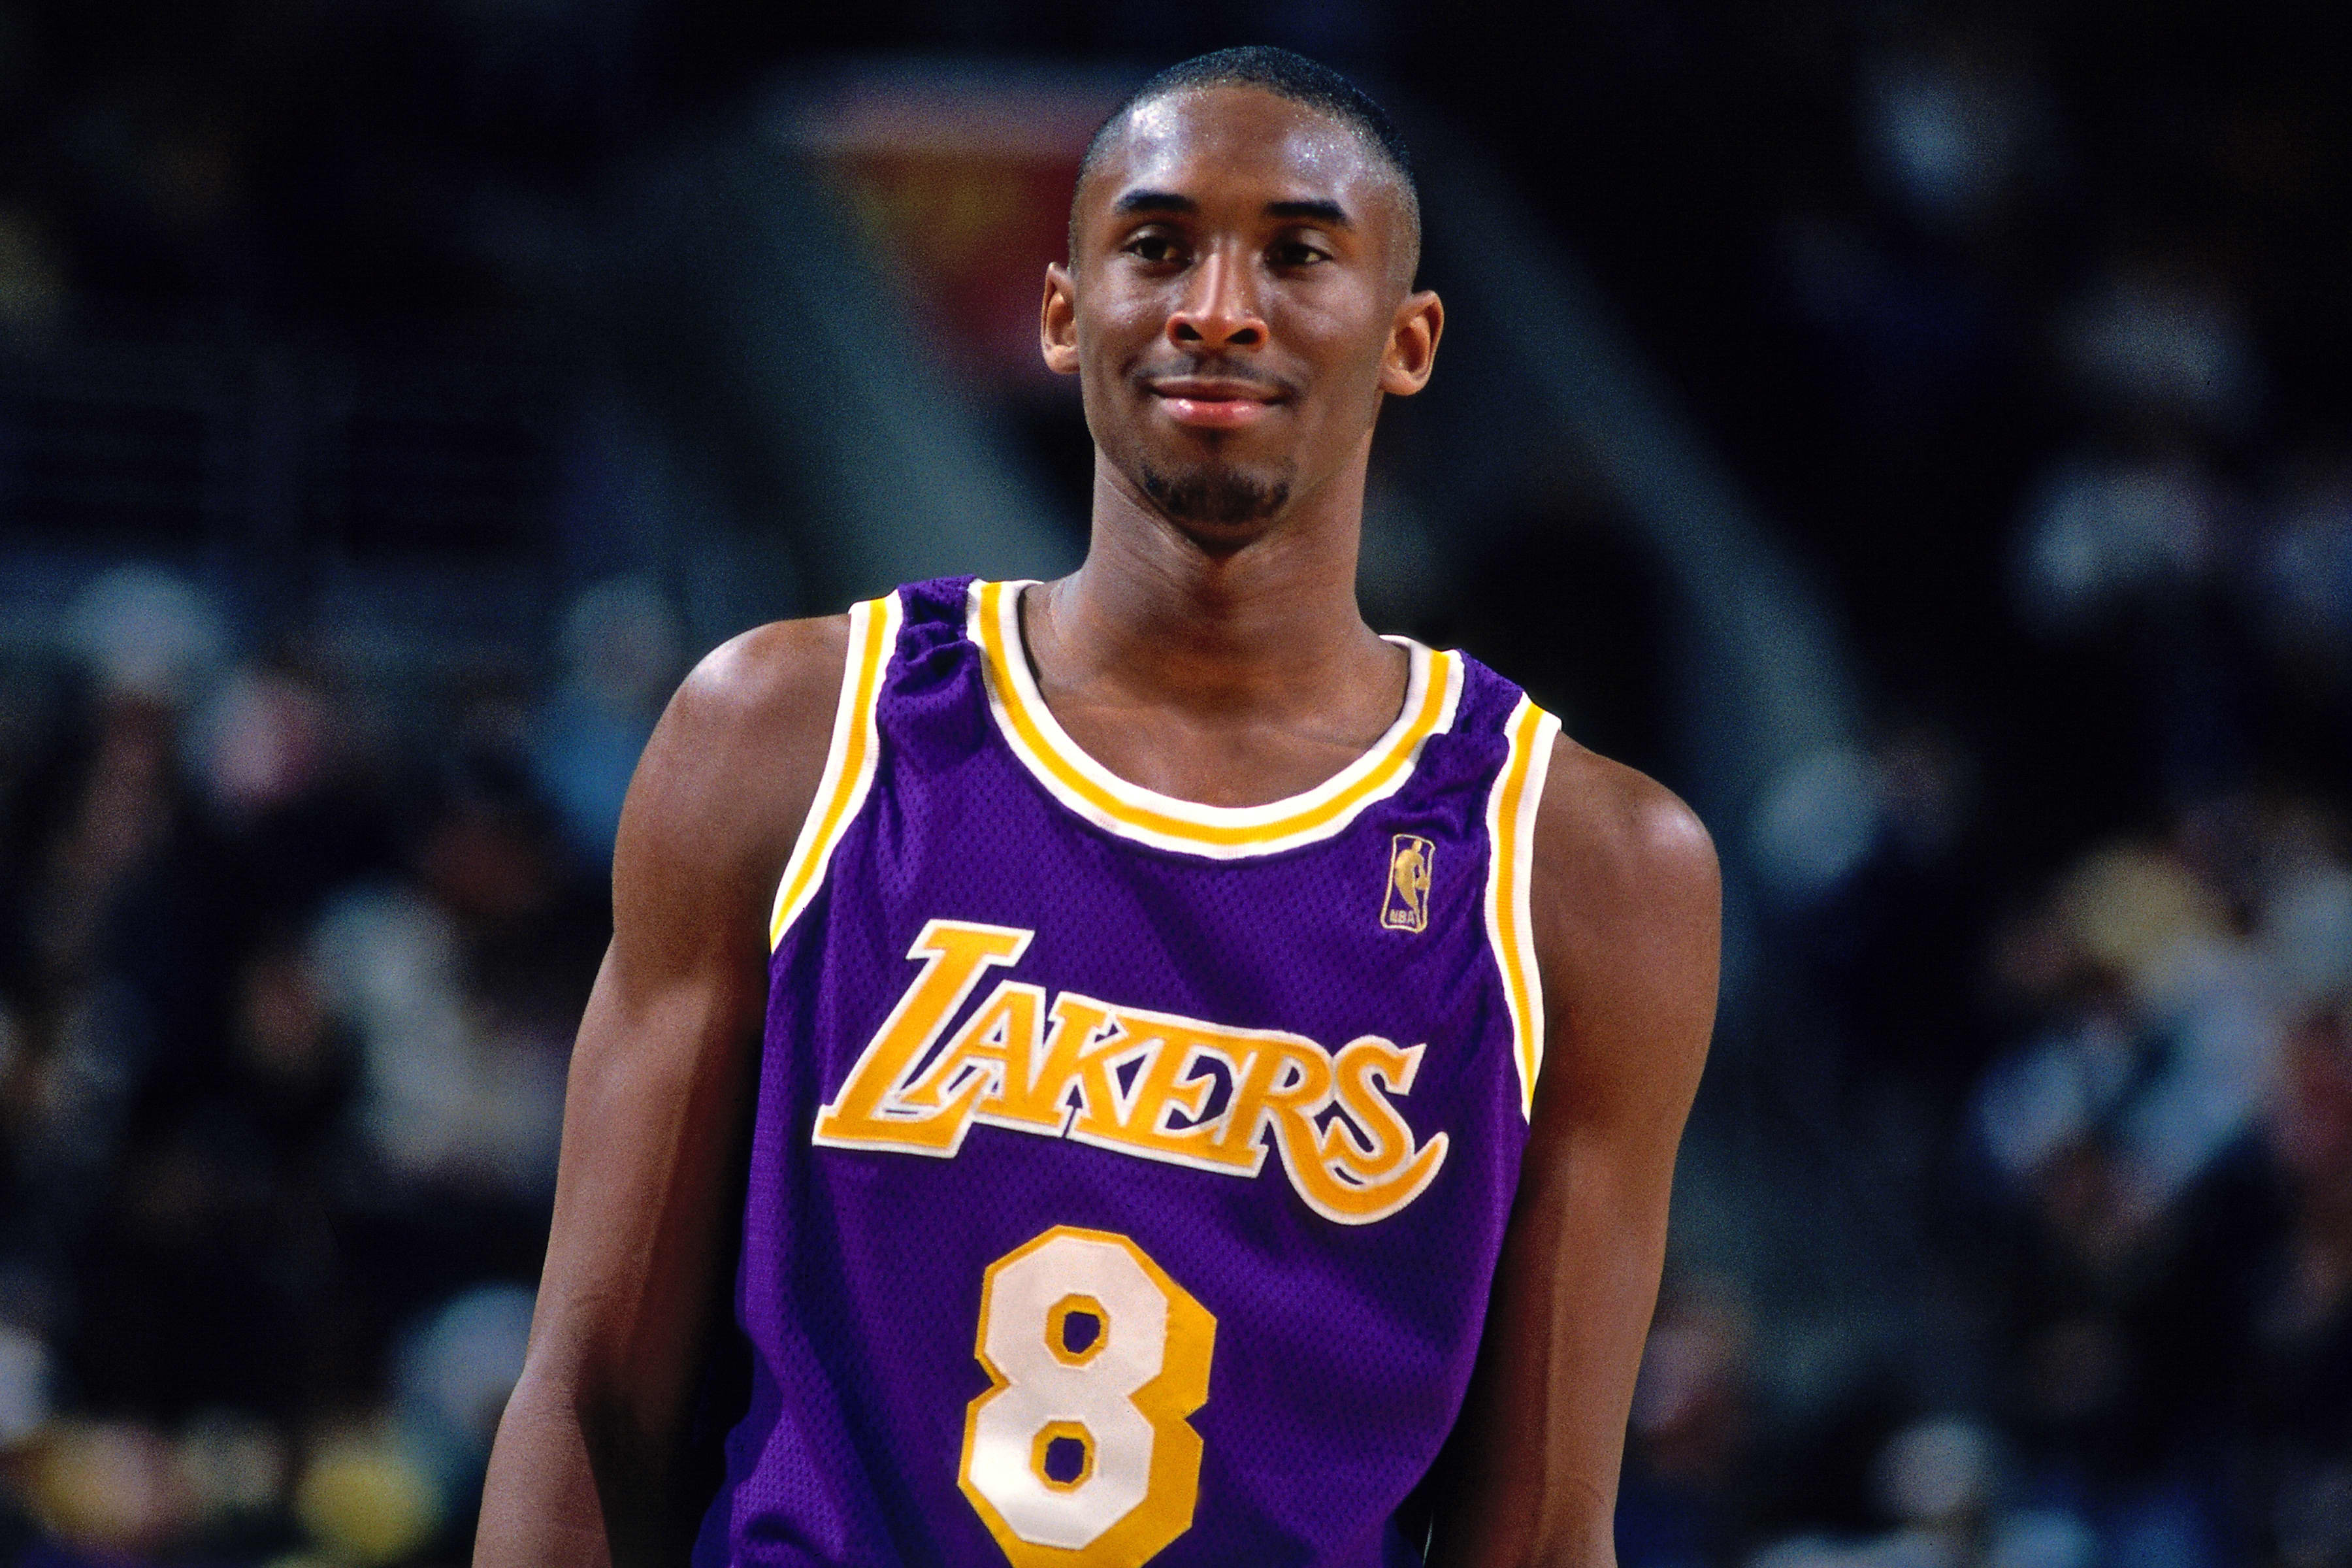 Kobe Bryant turns 41 today—here's the money advice he would give his 17-year-old self